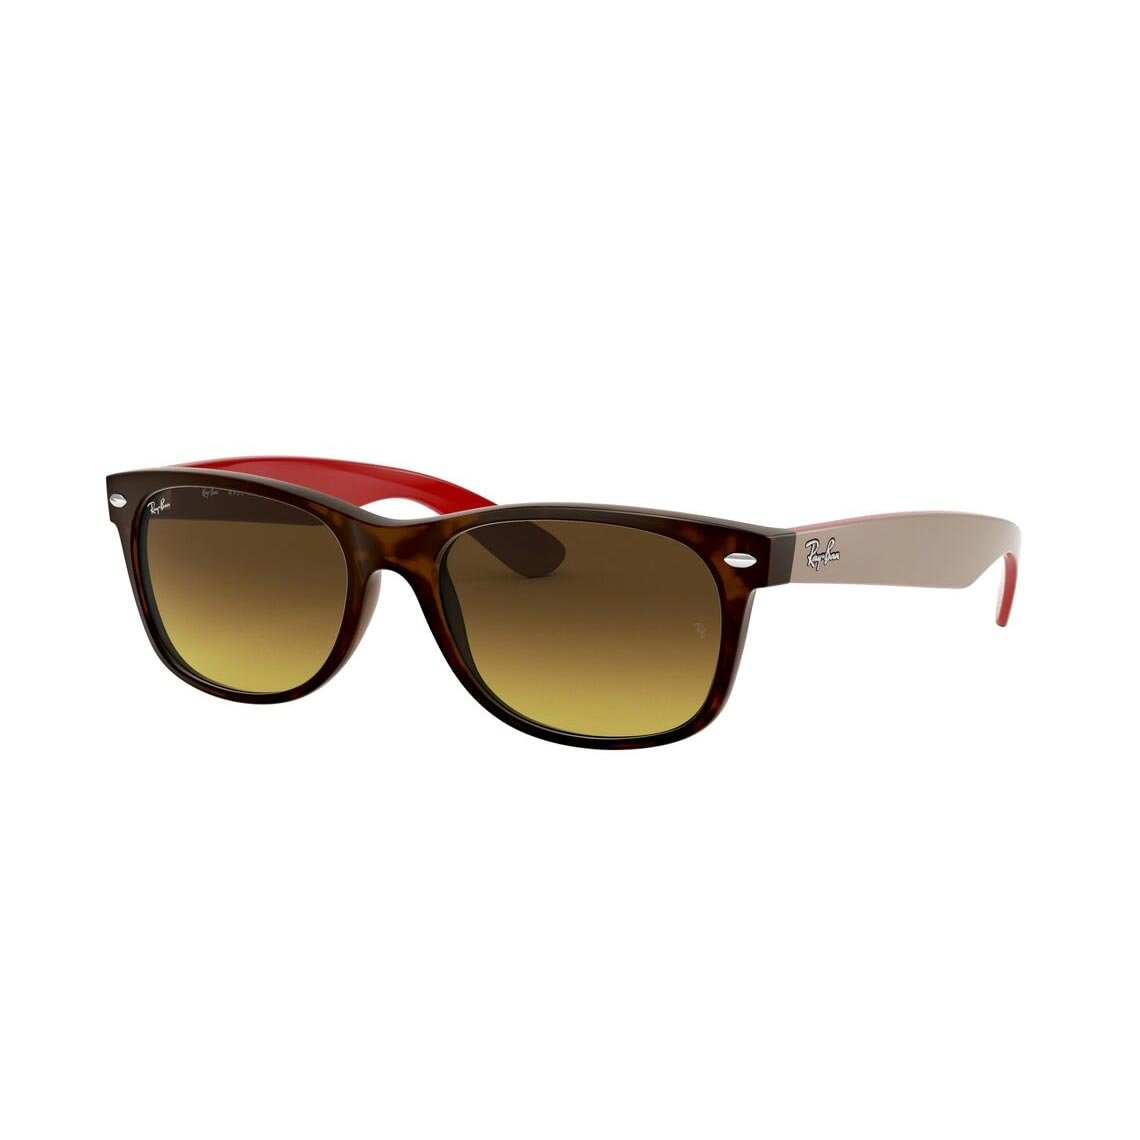 Ray-Ban New Wayfarer RB2132 618185 55